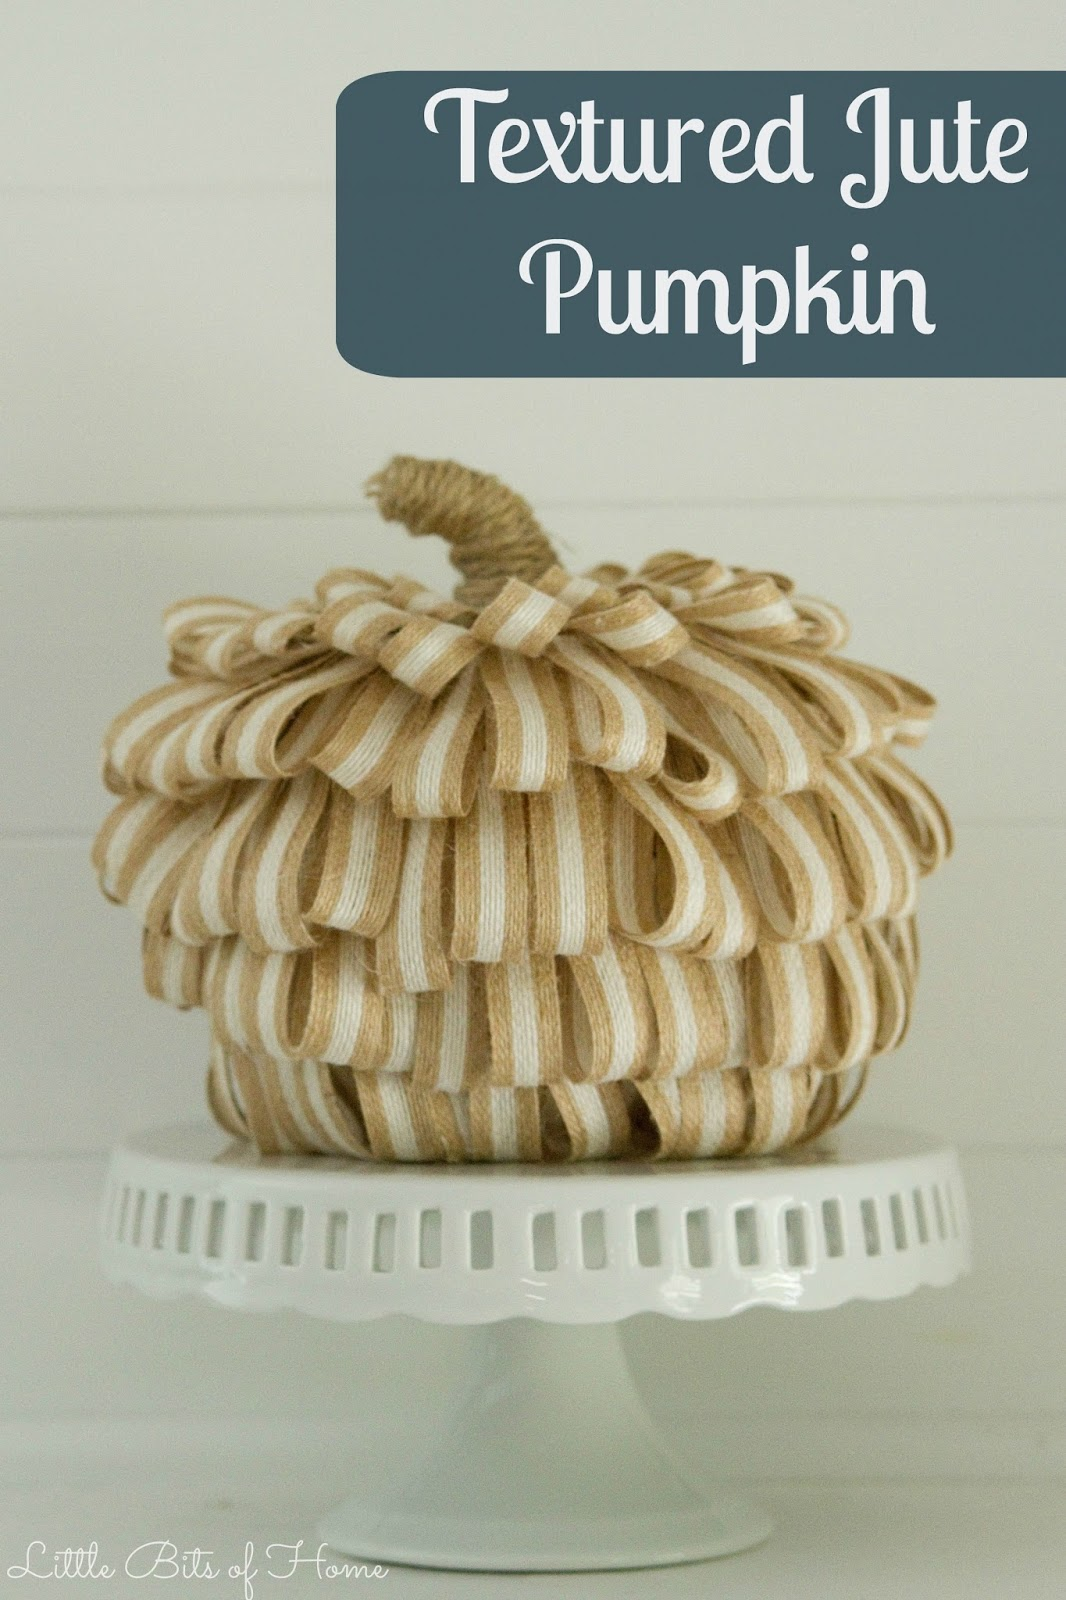 Homeforthefallidays Halloween Craft Blog Hop Textured Jute Pumpkin